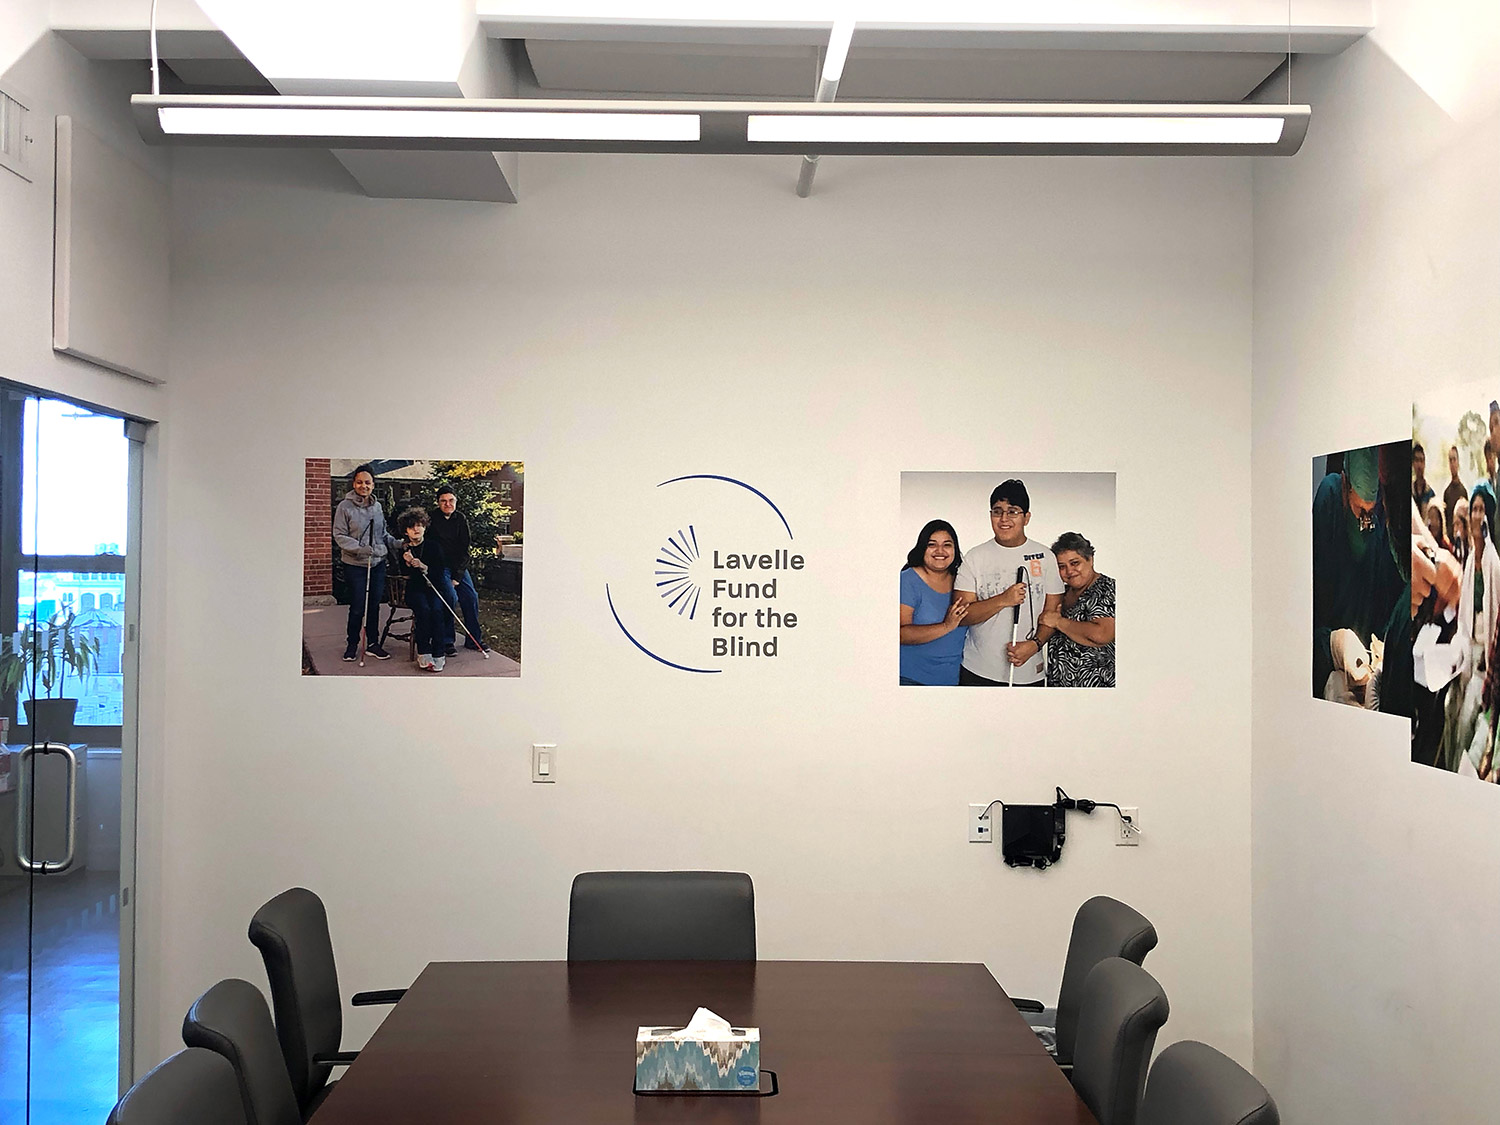 Lavelle office environment wall graphics